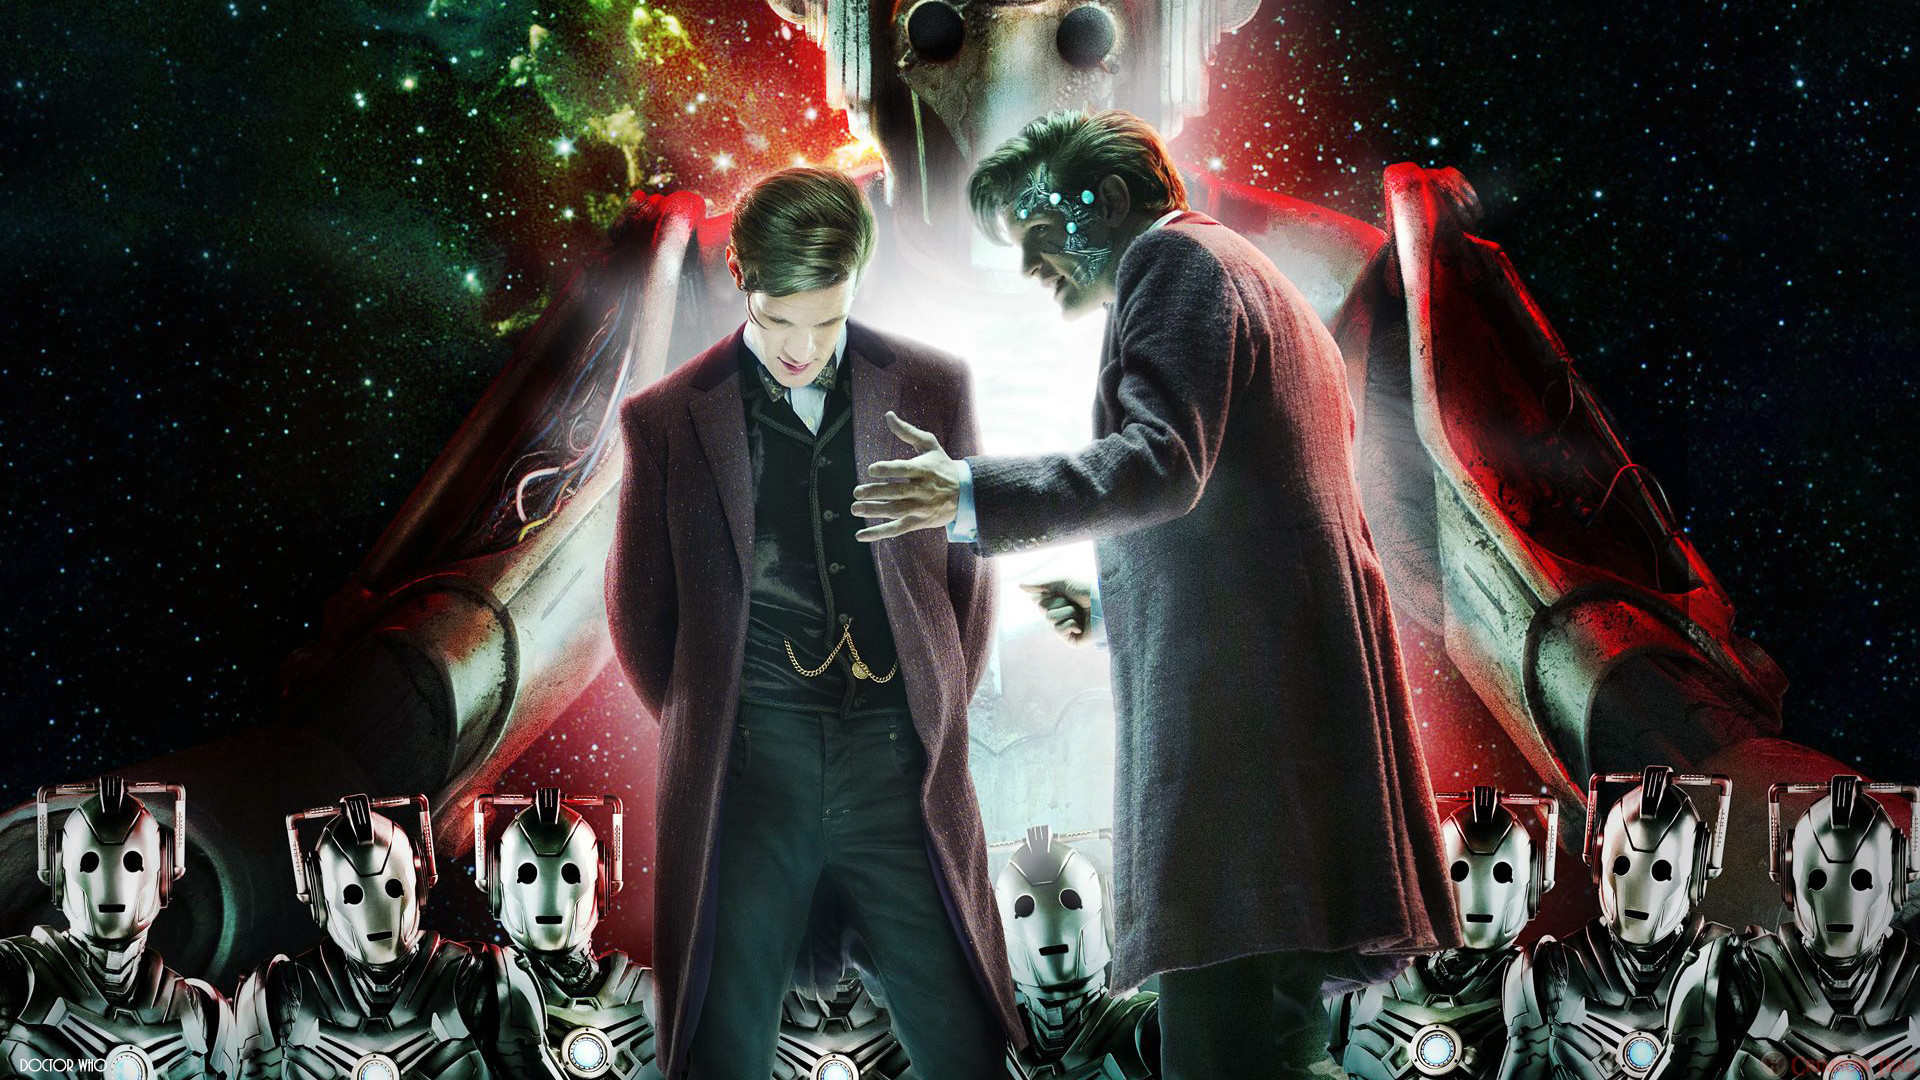 Doctor Who: Nightmare in Silver Wallpaper